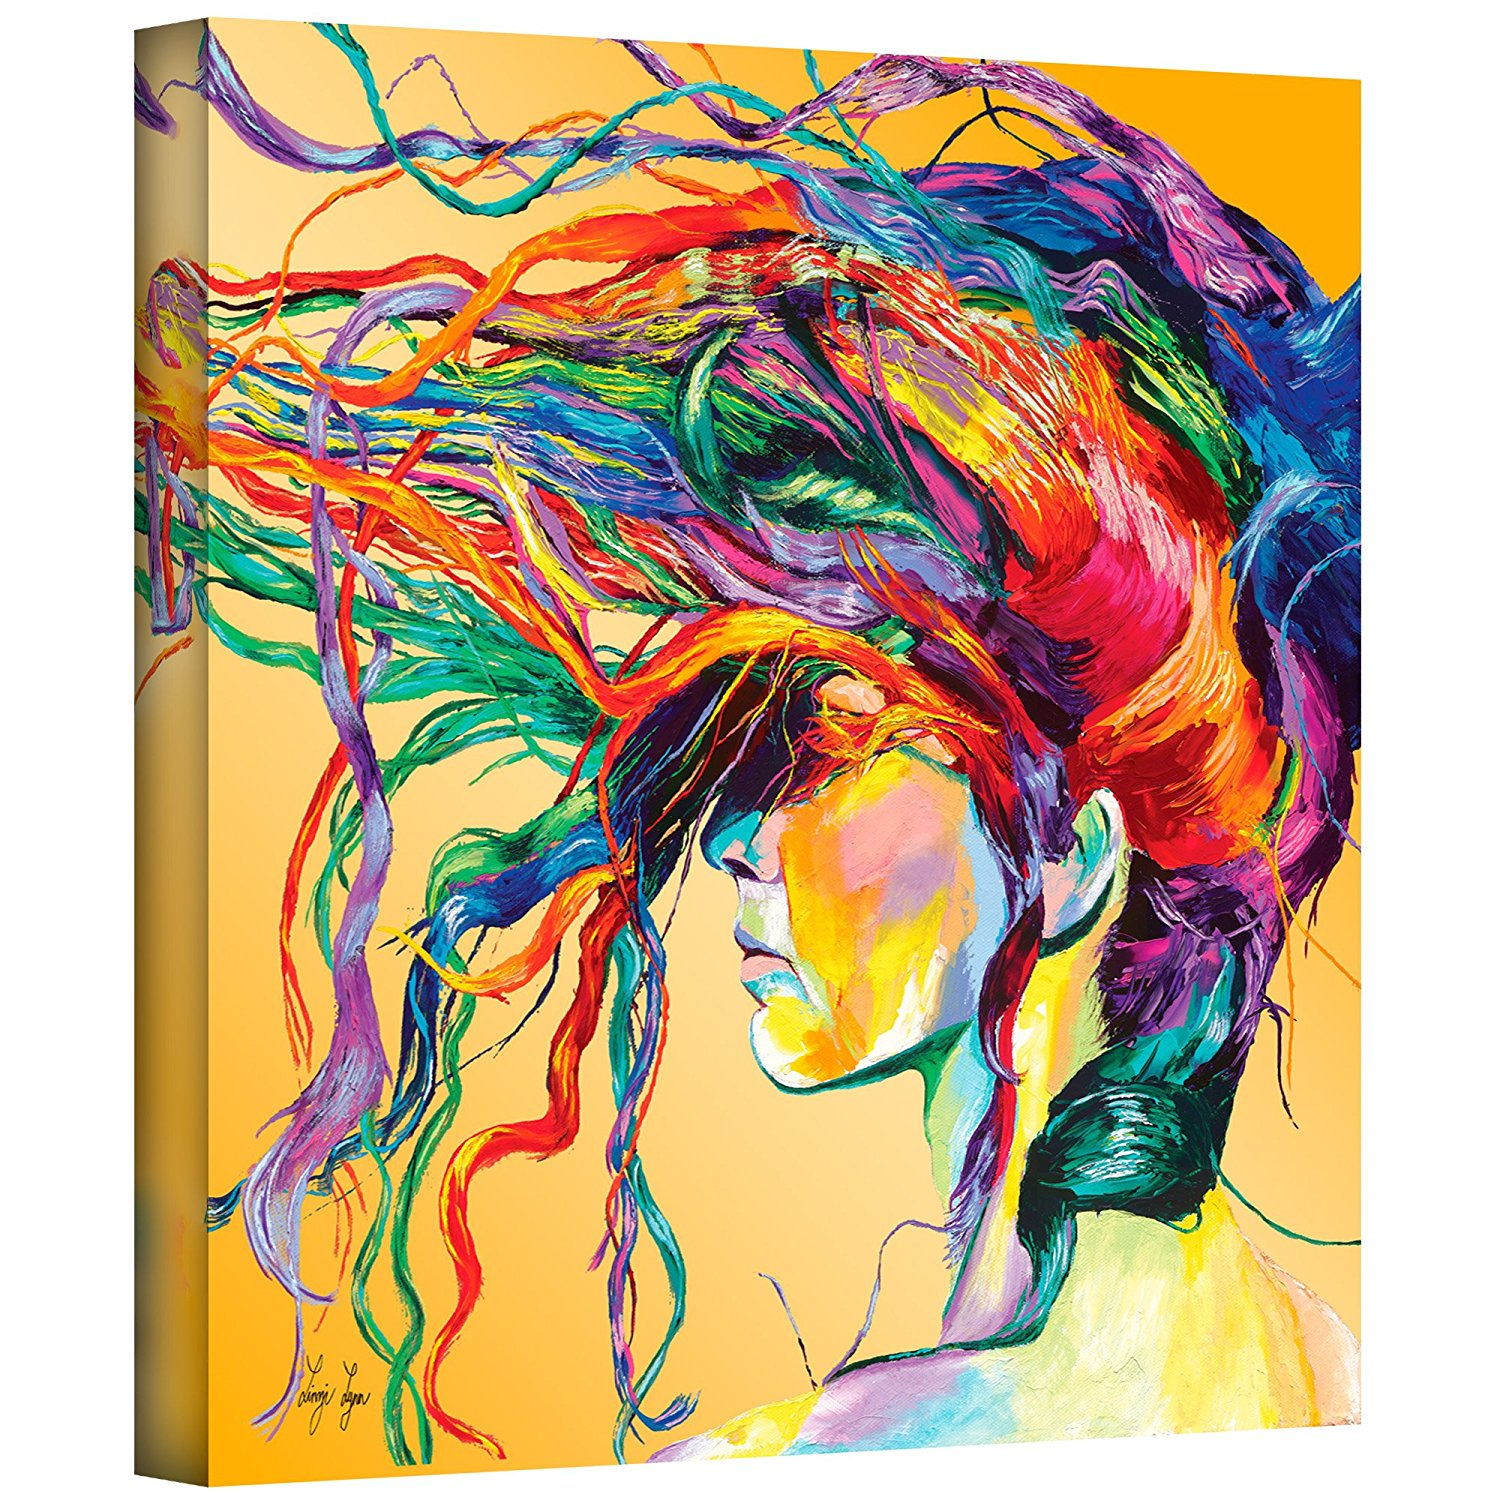 Windswept Gallery-Wrapped Canvas Artwork Canvas Printings wall art drop shipping